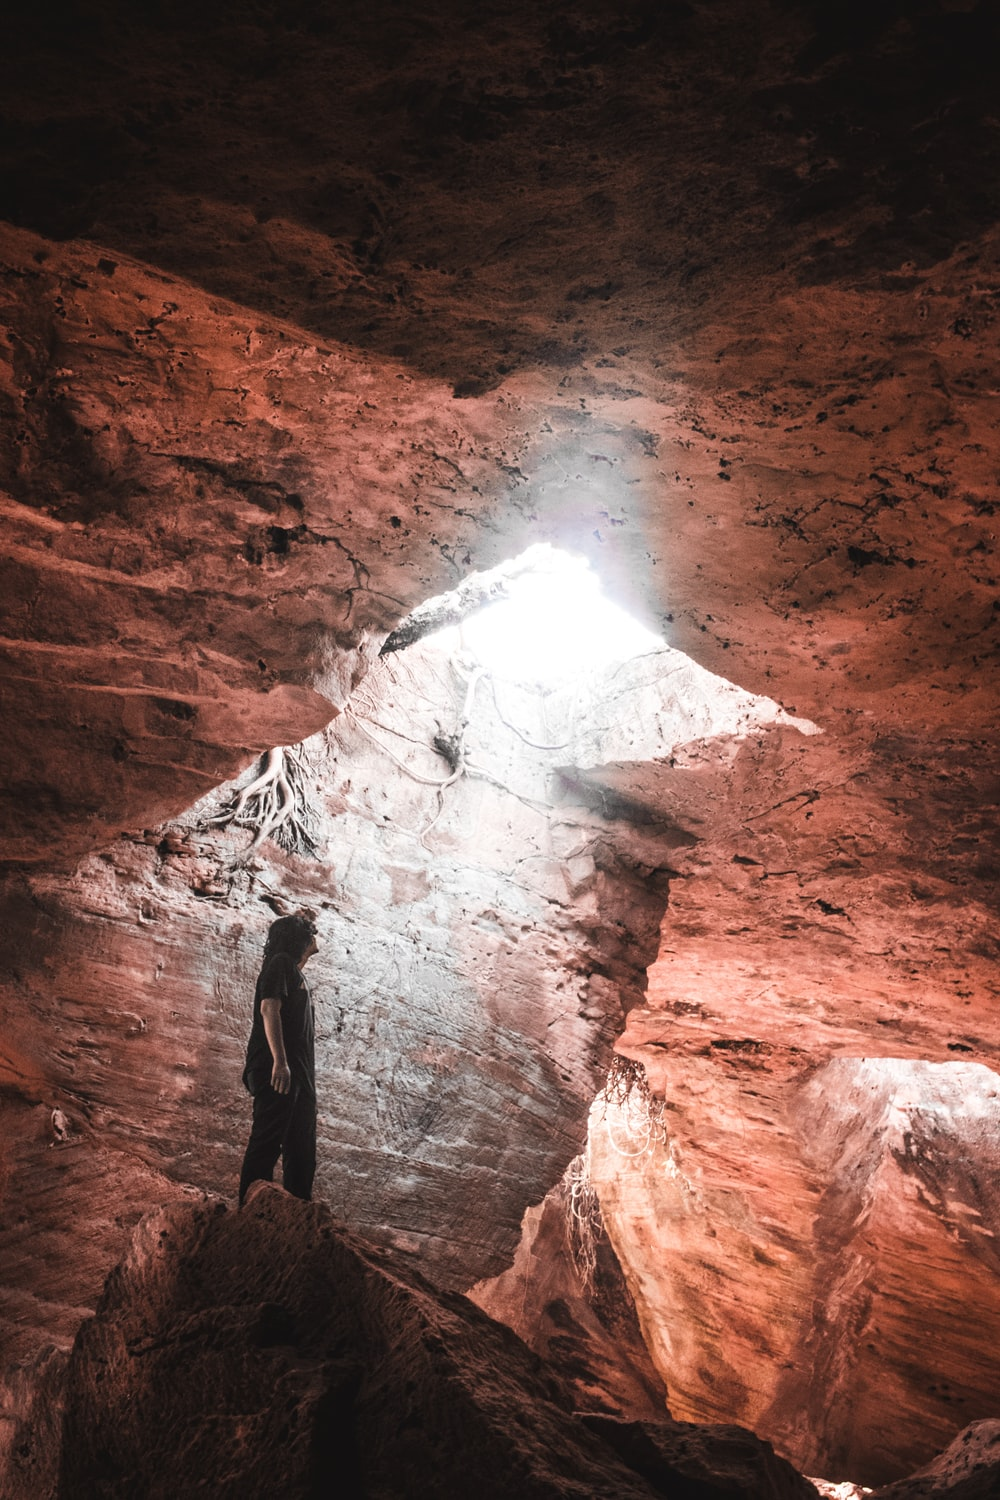 person standing on rock inside the cave